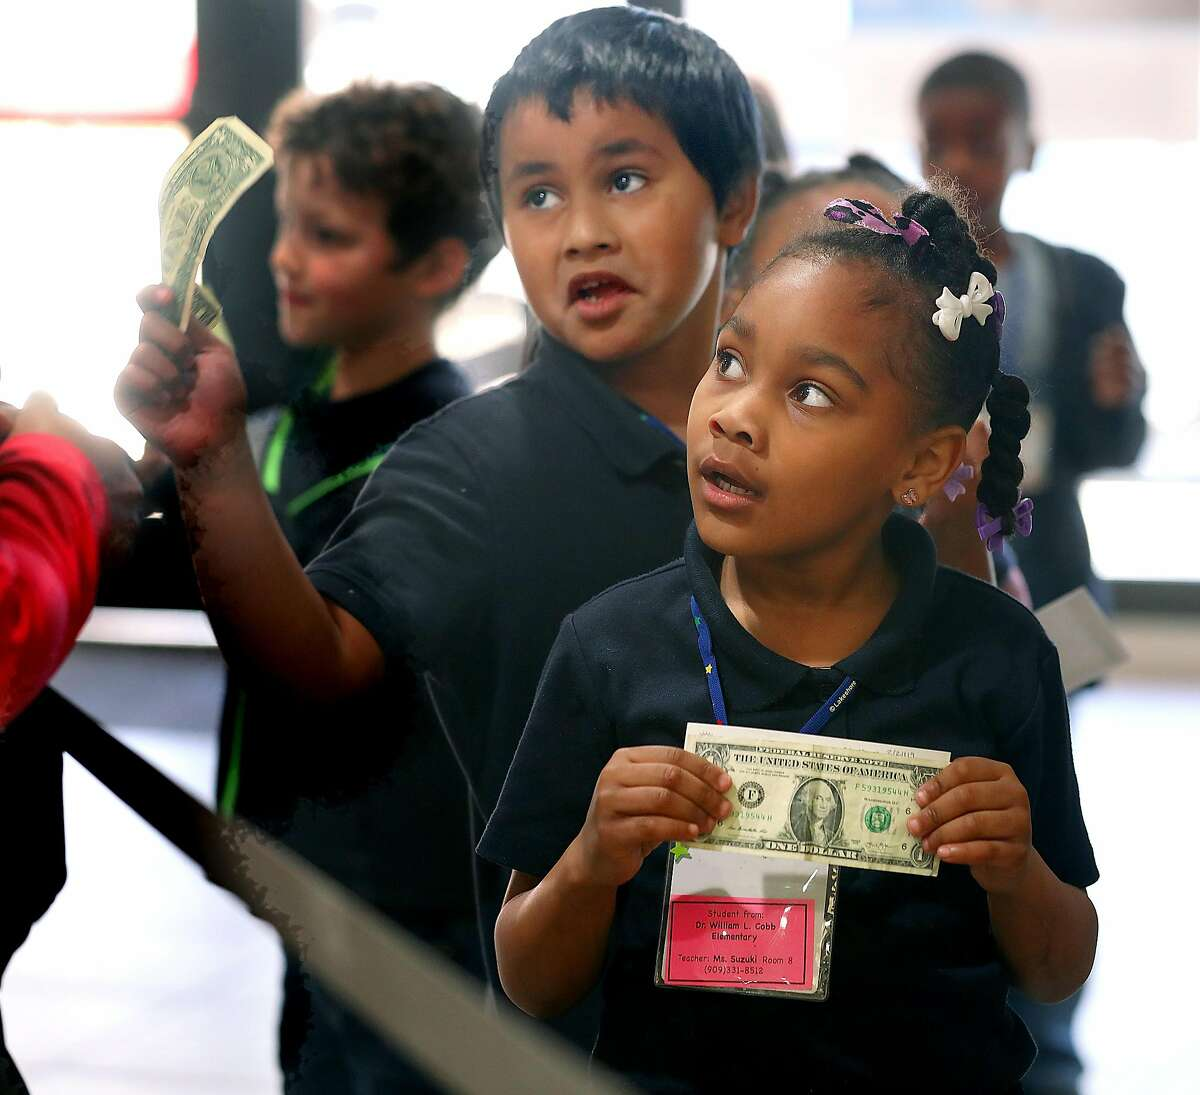 First graders from Cobb Elementary including Kayloni (front) and Daumani (middle) wait in line during a field trip to a Citibank branch to make a deposit to their new savings accounts and learn about banking on Thursday, Feb. 21, 2019, in San Francisco, Calif.